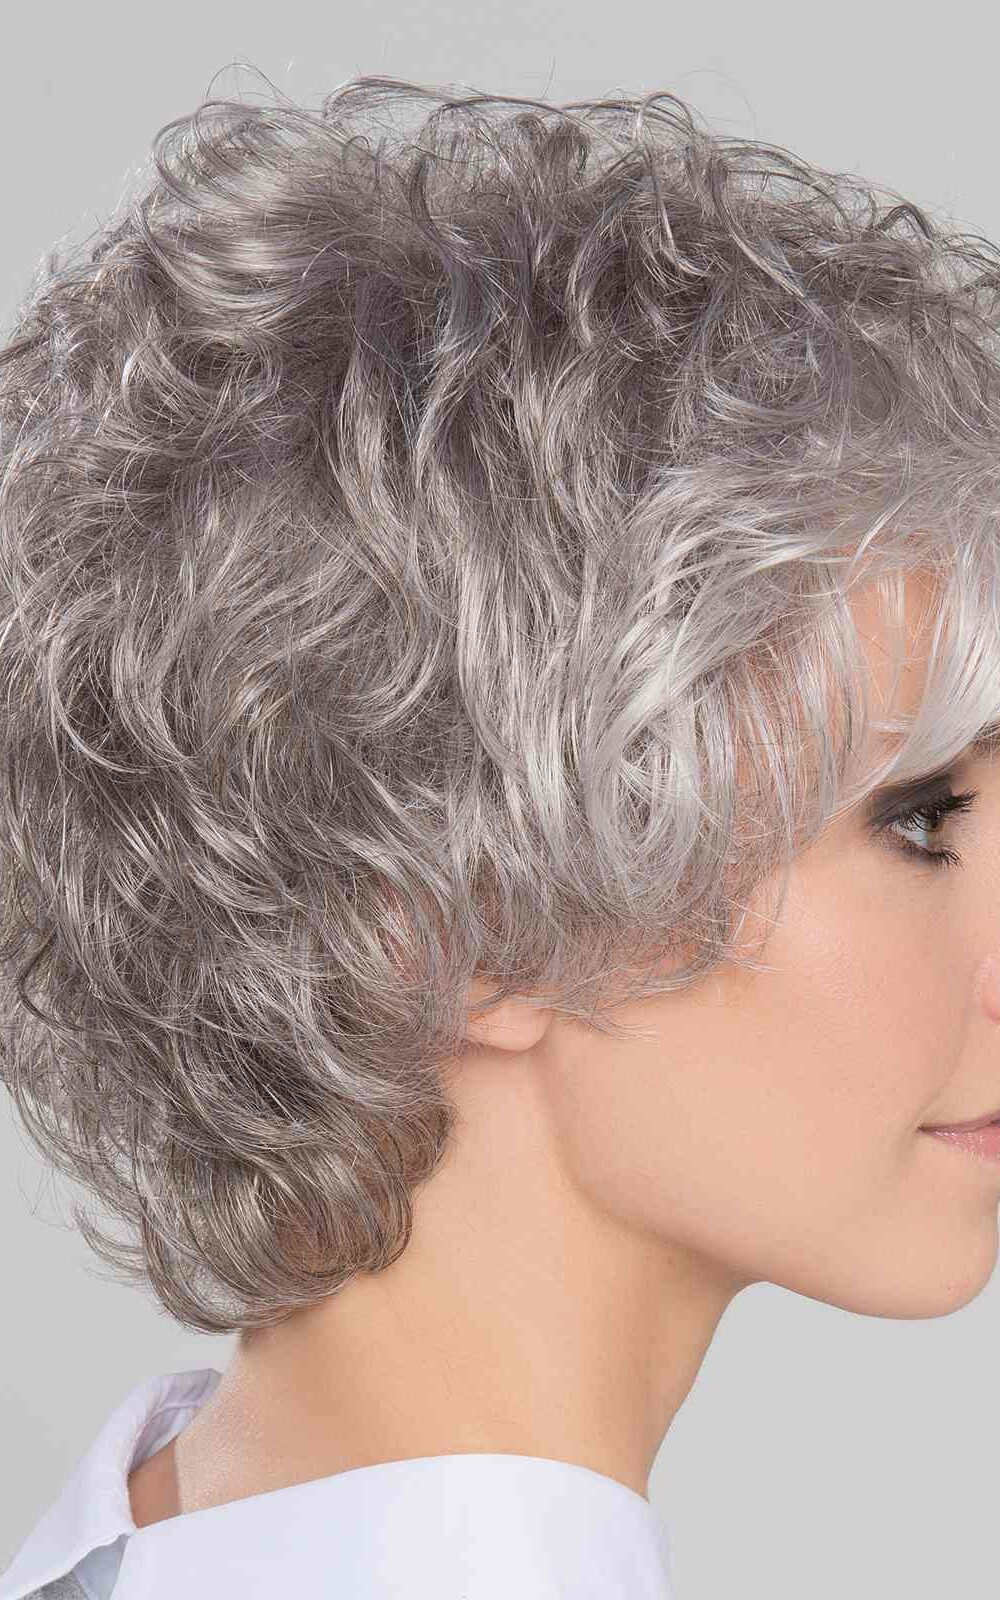 City Large   Synthetic Lace Front Wig (Wefted Cap) by Ellen Wille   Snow Mix   Elly-K.com.au